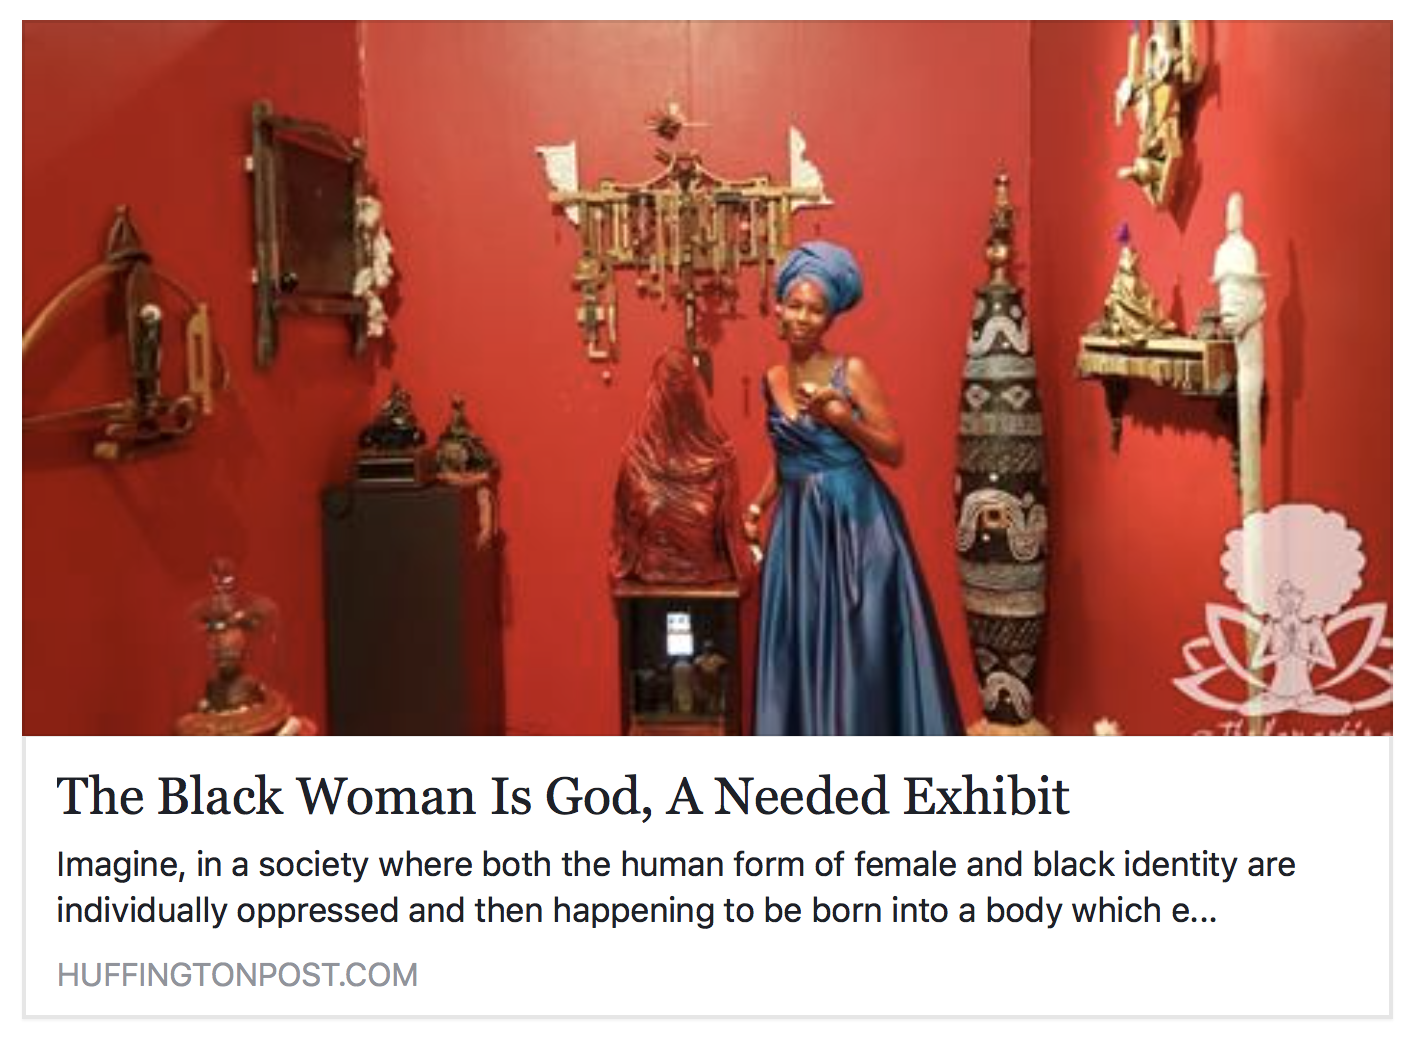 """Williams, Kristina. """"The Black Woman Is God, A Needed Exhibit."""" Http://www.huffingtonpost.com. N.p., 25 July 2016. Web. 26 July 2016."""